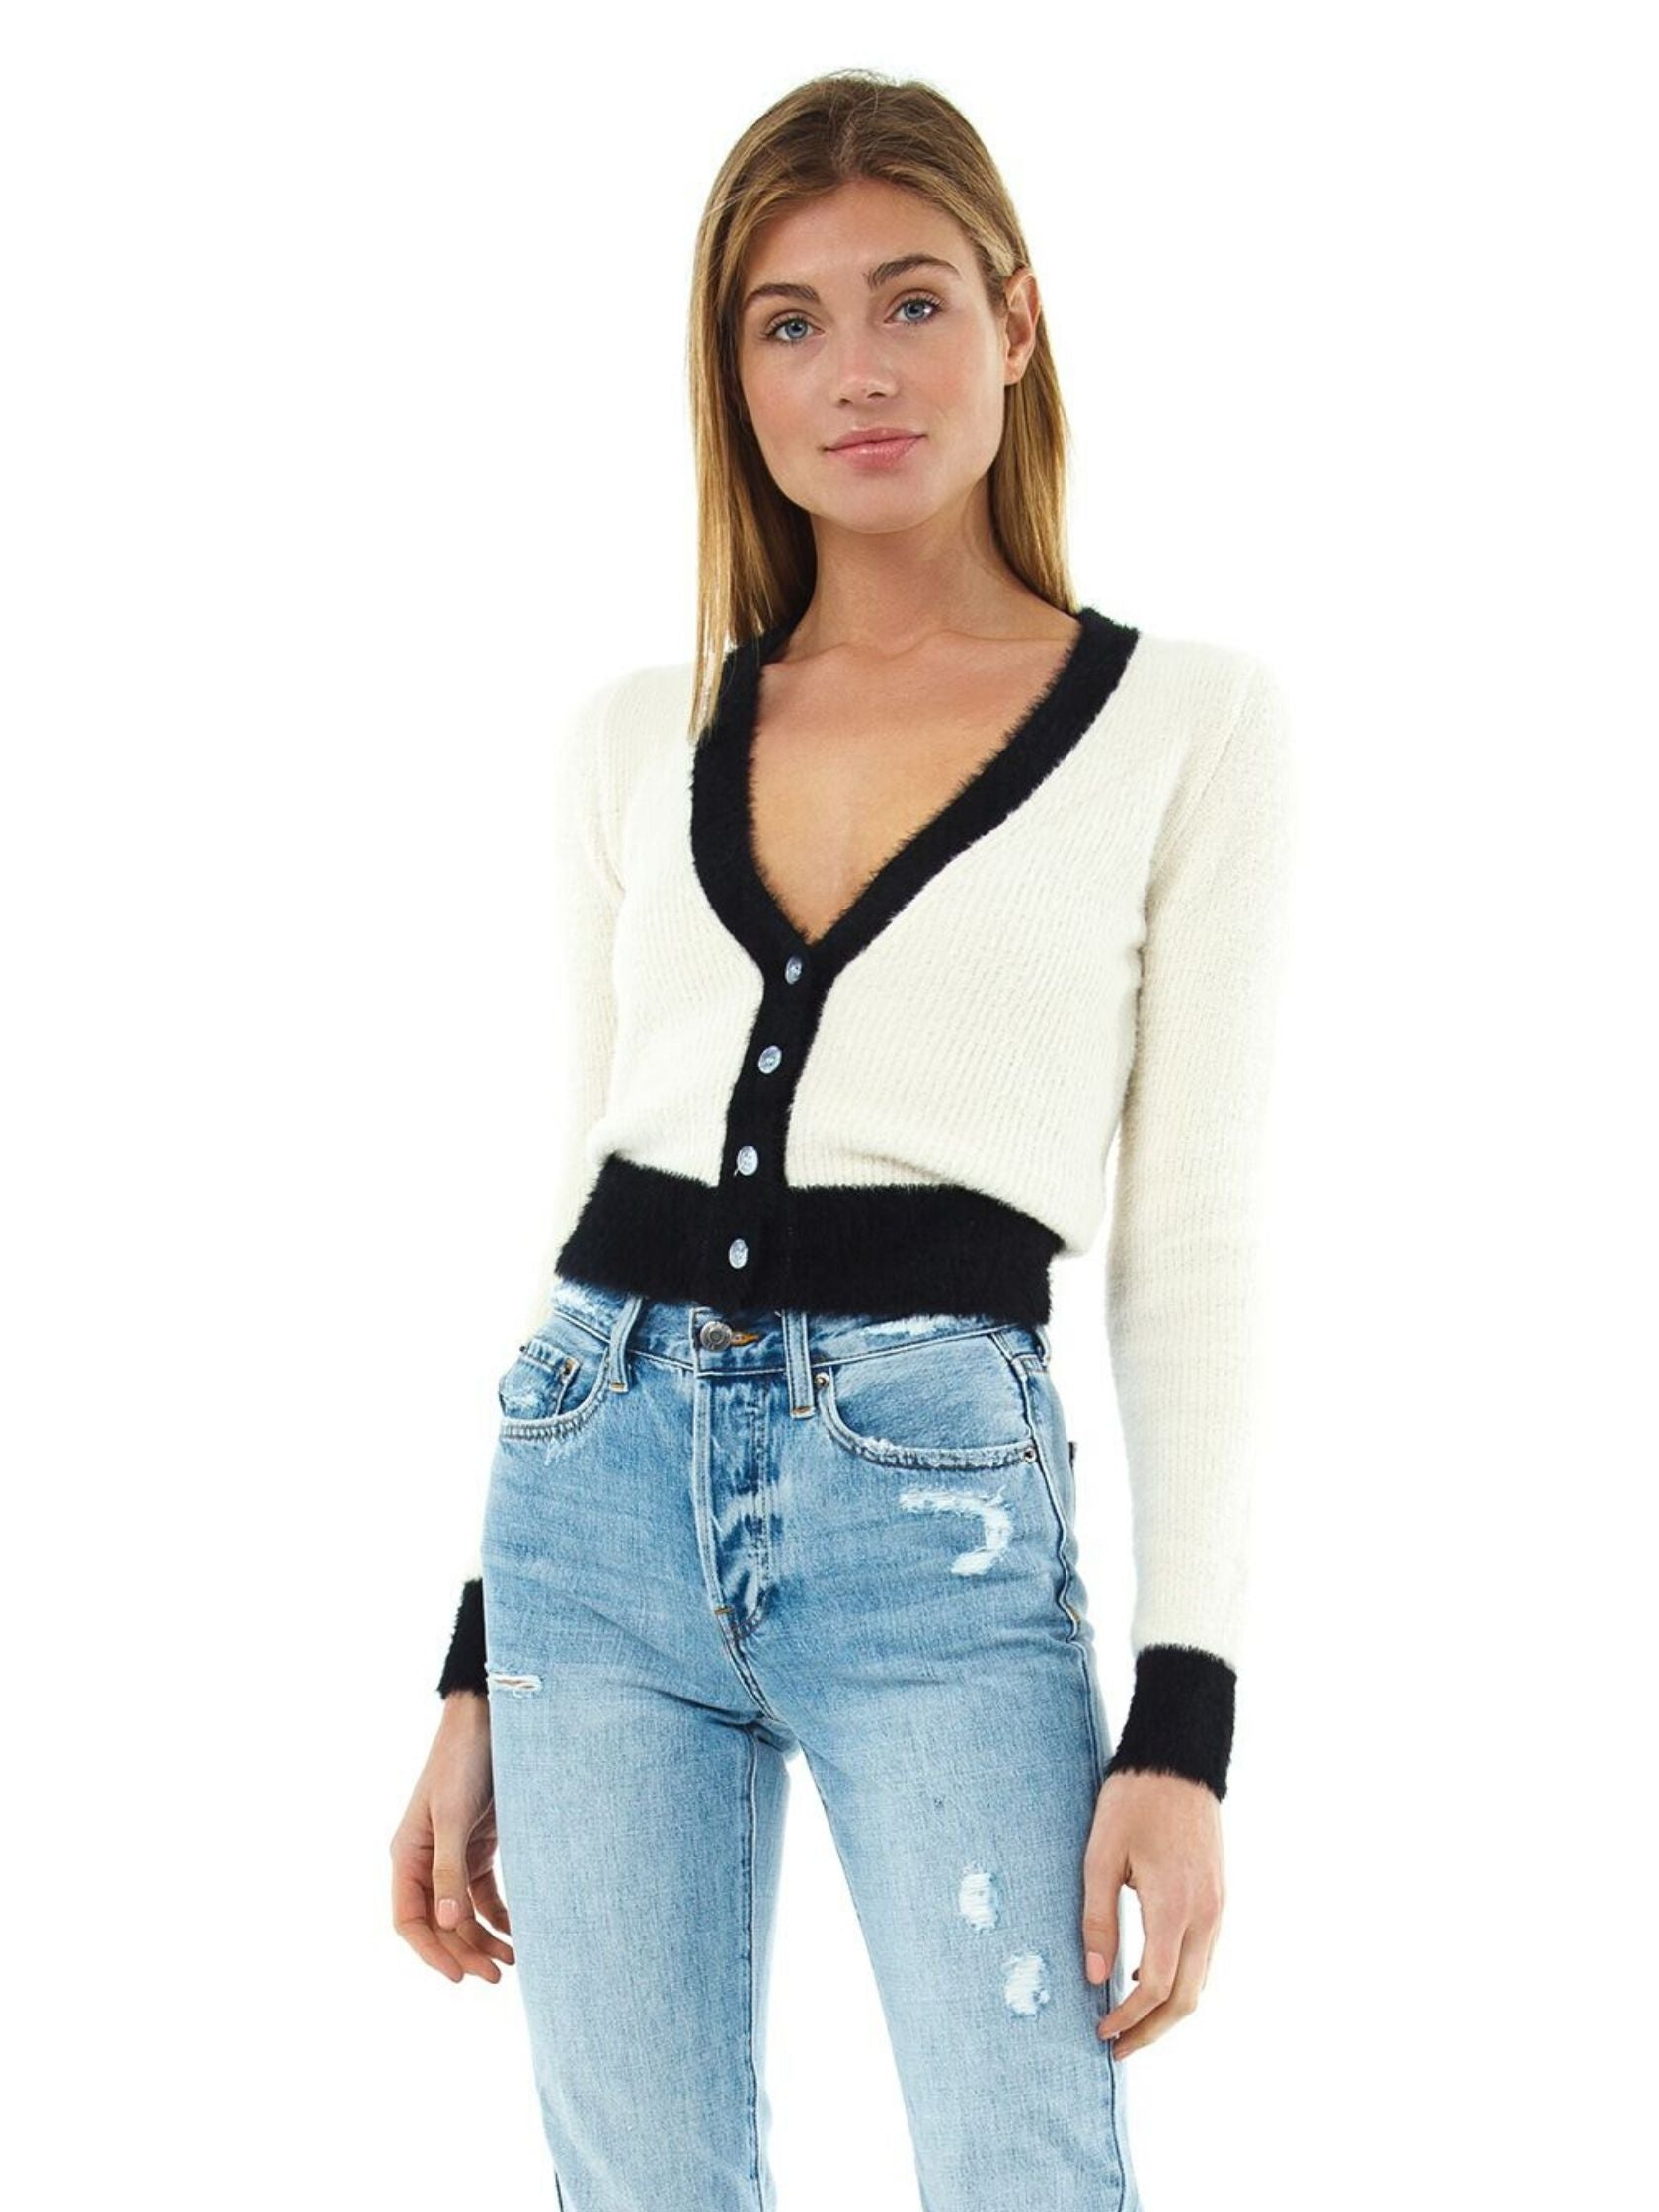 Woman wearing a cardigan rental from ASTR called Bi-coastal Cardigan